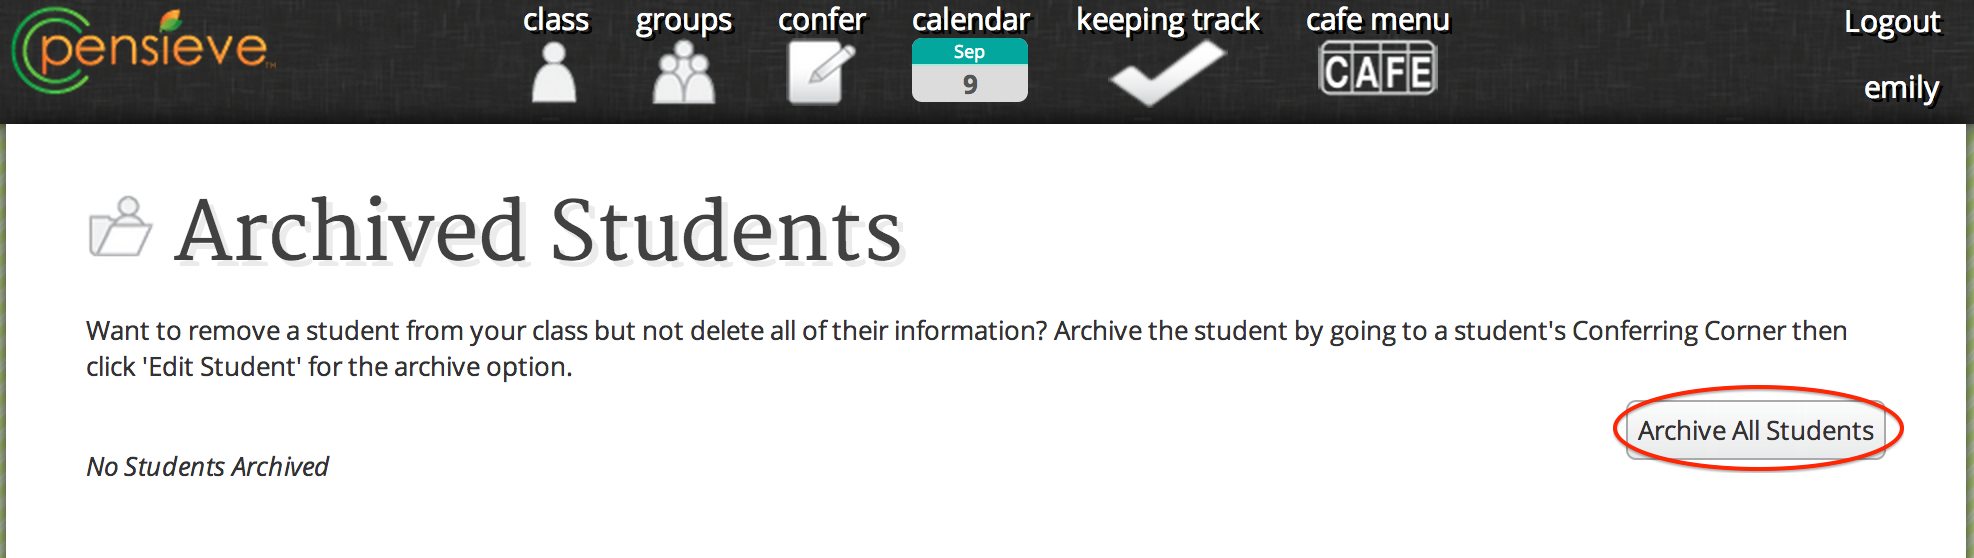 archiveAllStudents 2